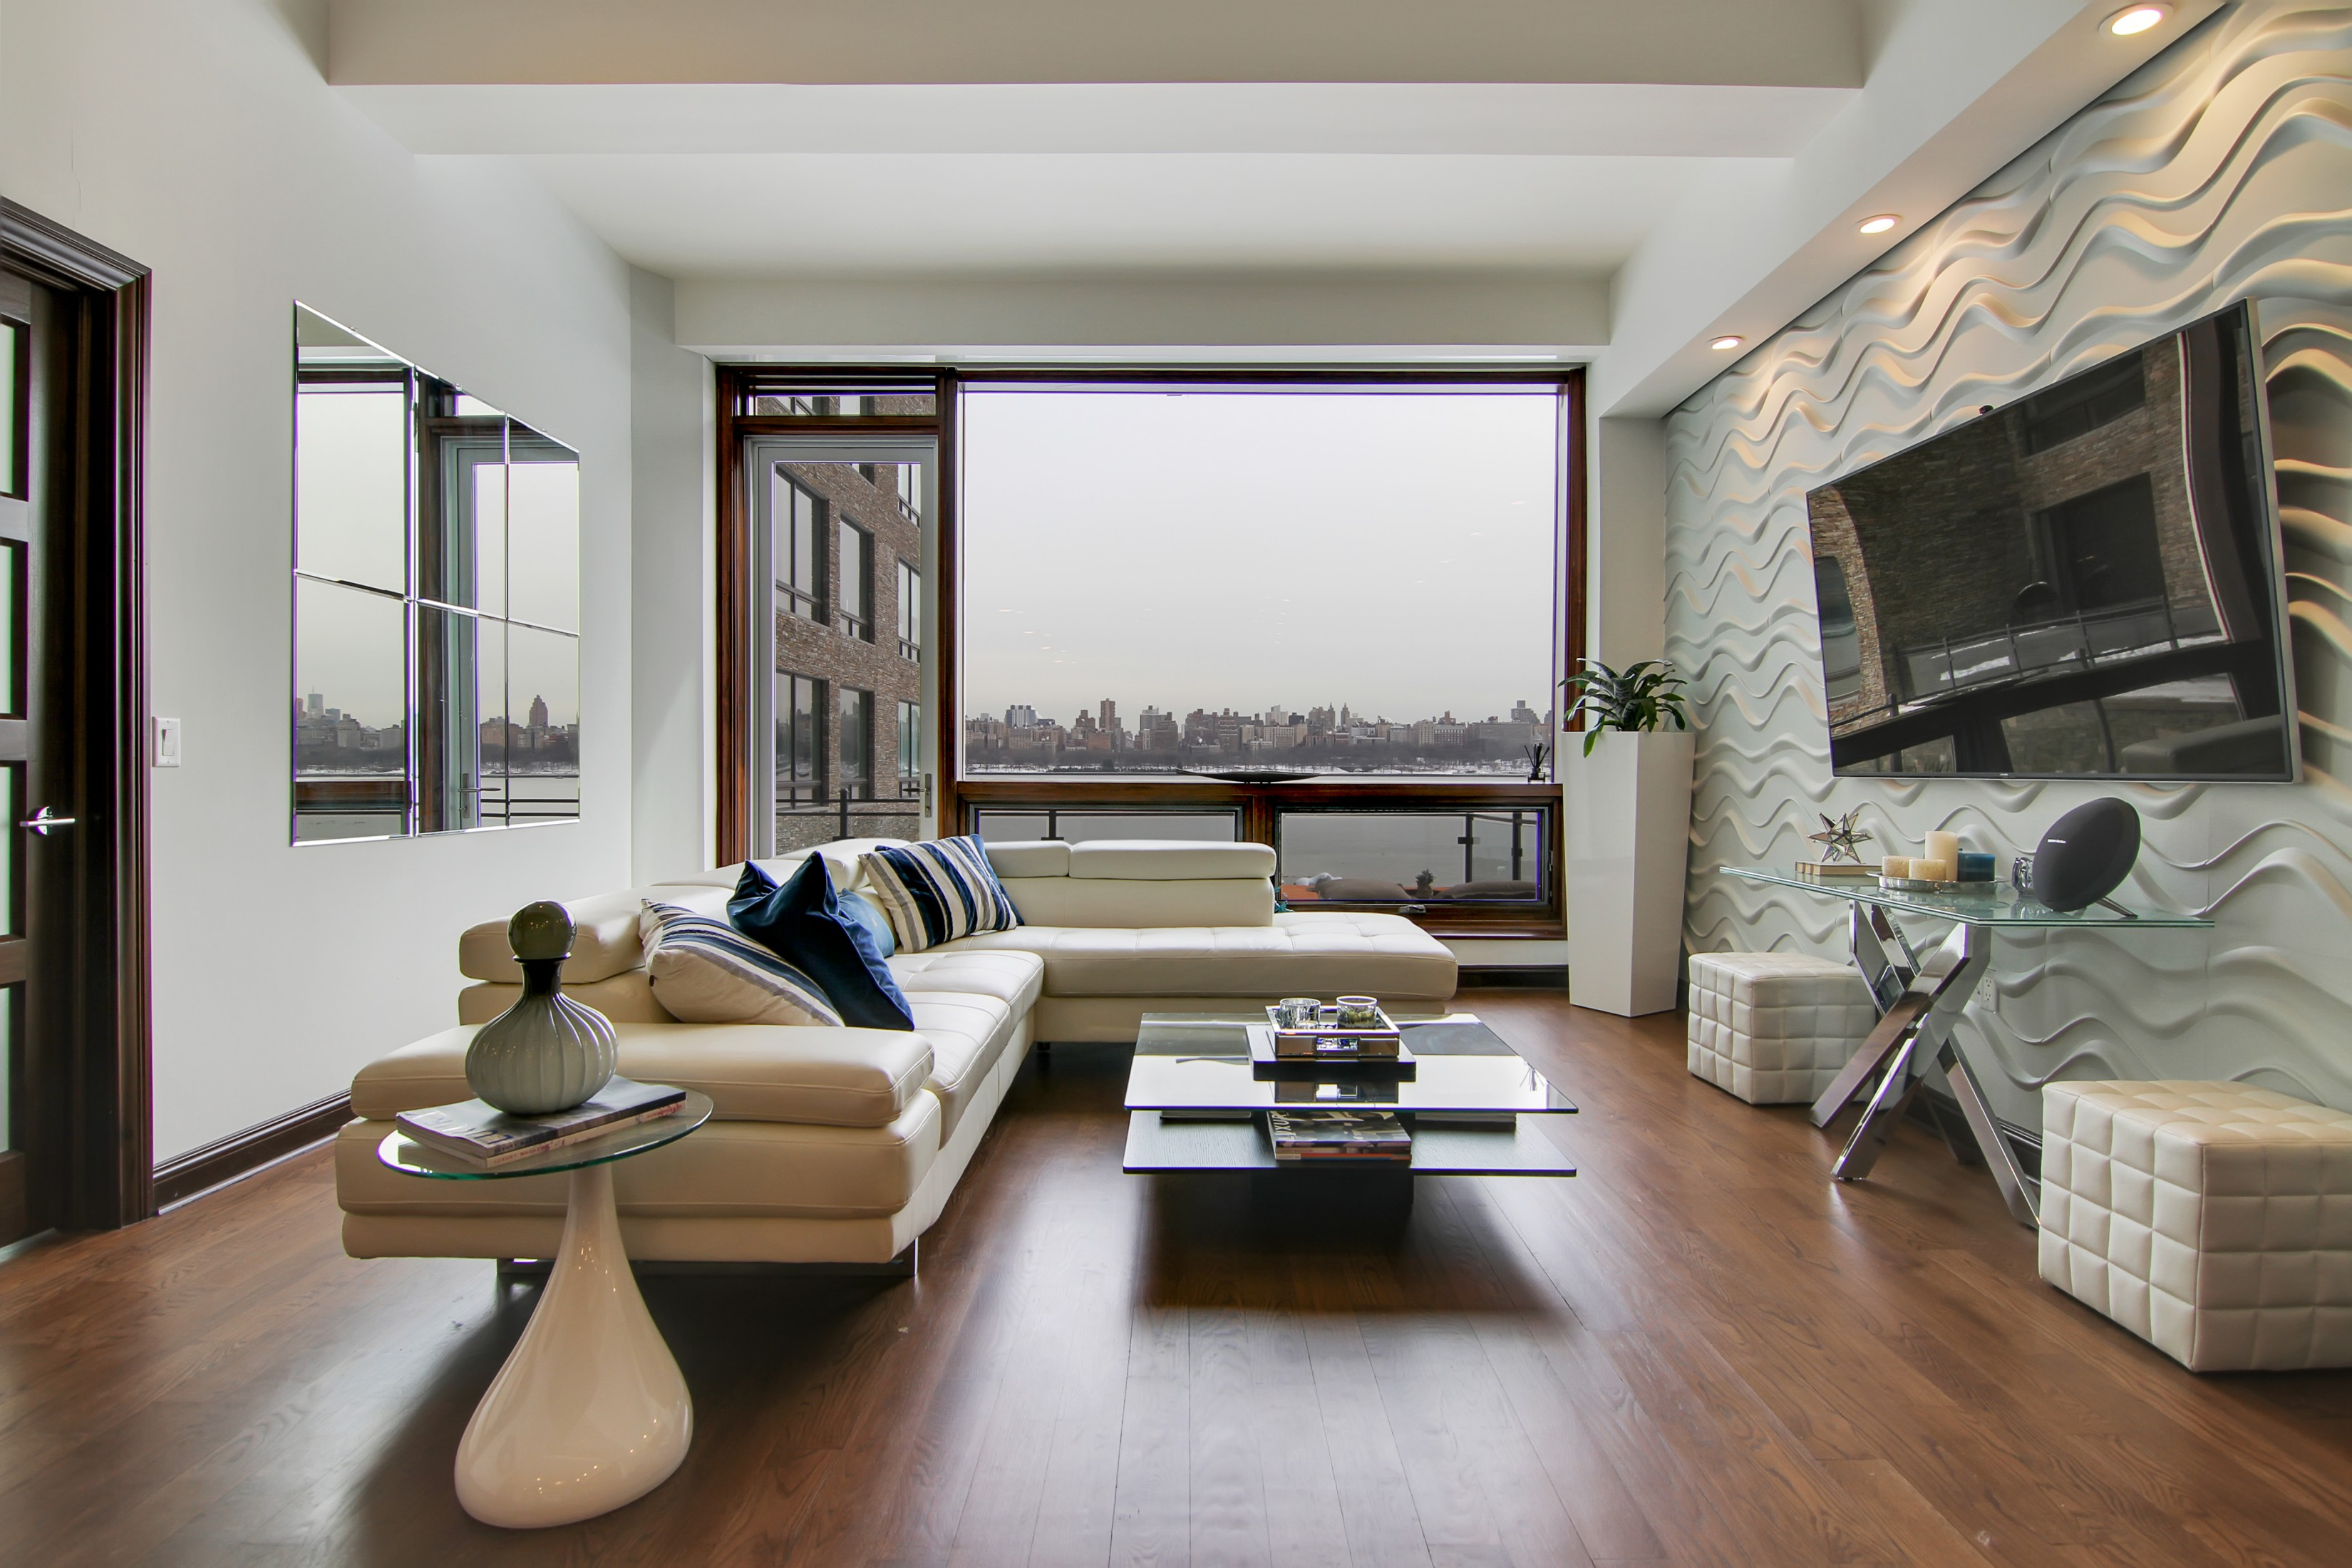 Condominium for Sale at Unique 2 bedroom at The Pearl! 9 Somerset Lane #211 Edgewater, New Jersey 07020 United States